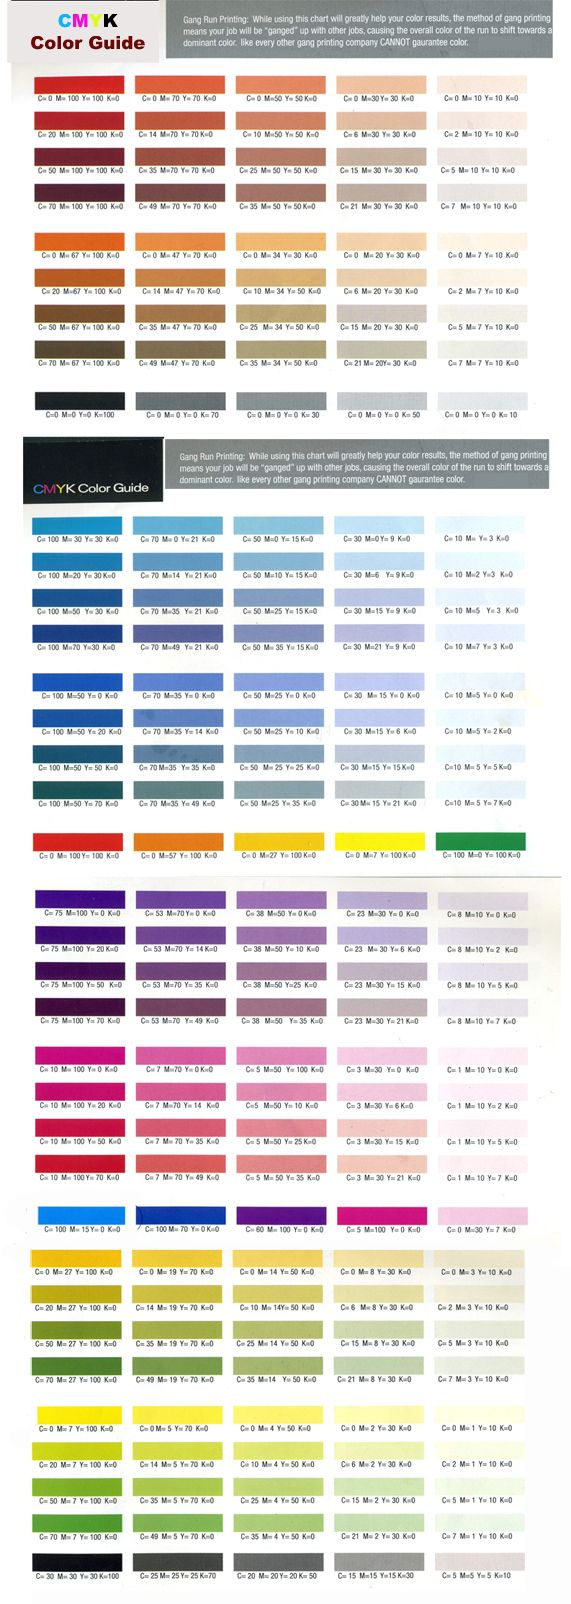 Color adobe online - The 25 Best Cmyk Color Chart Ideas On Pinterest Pantone Cmyk Color Charts And Color Wheel Online